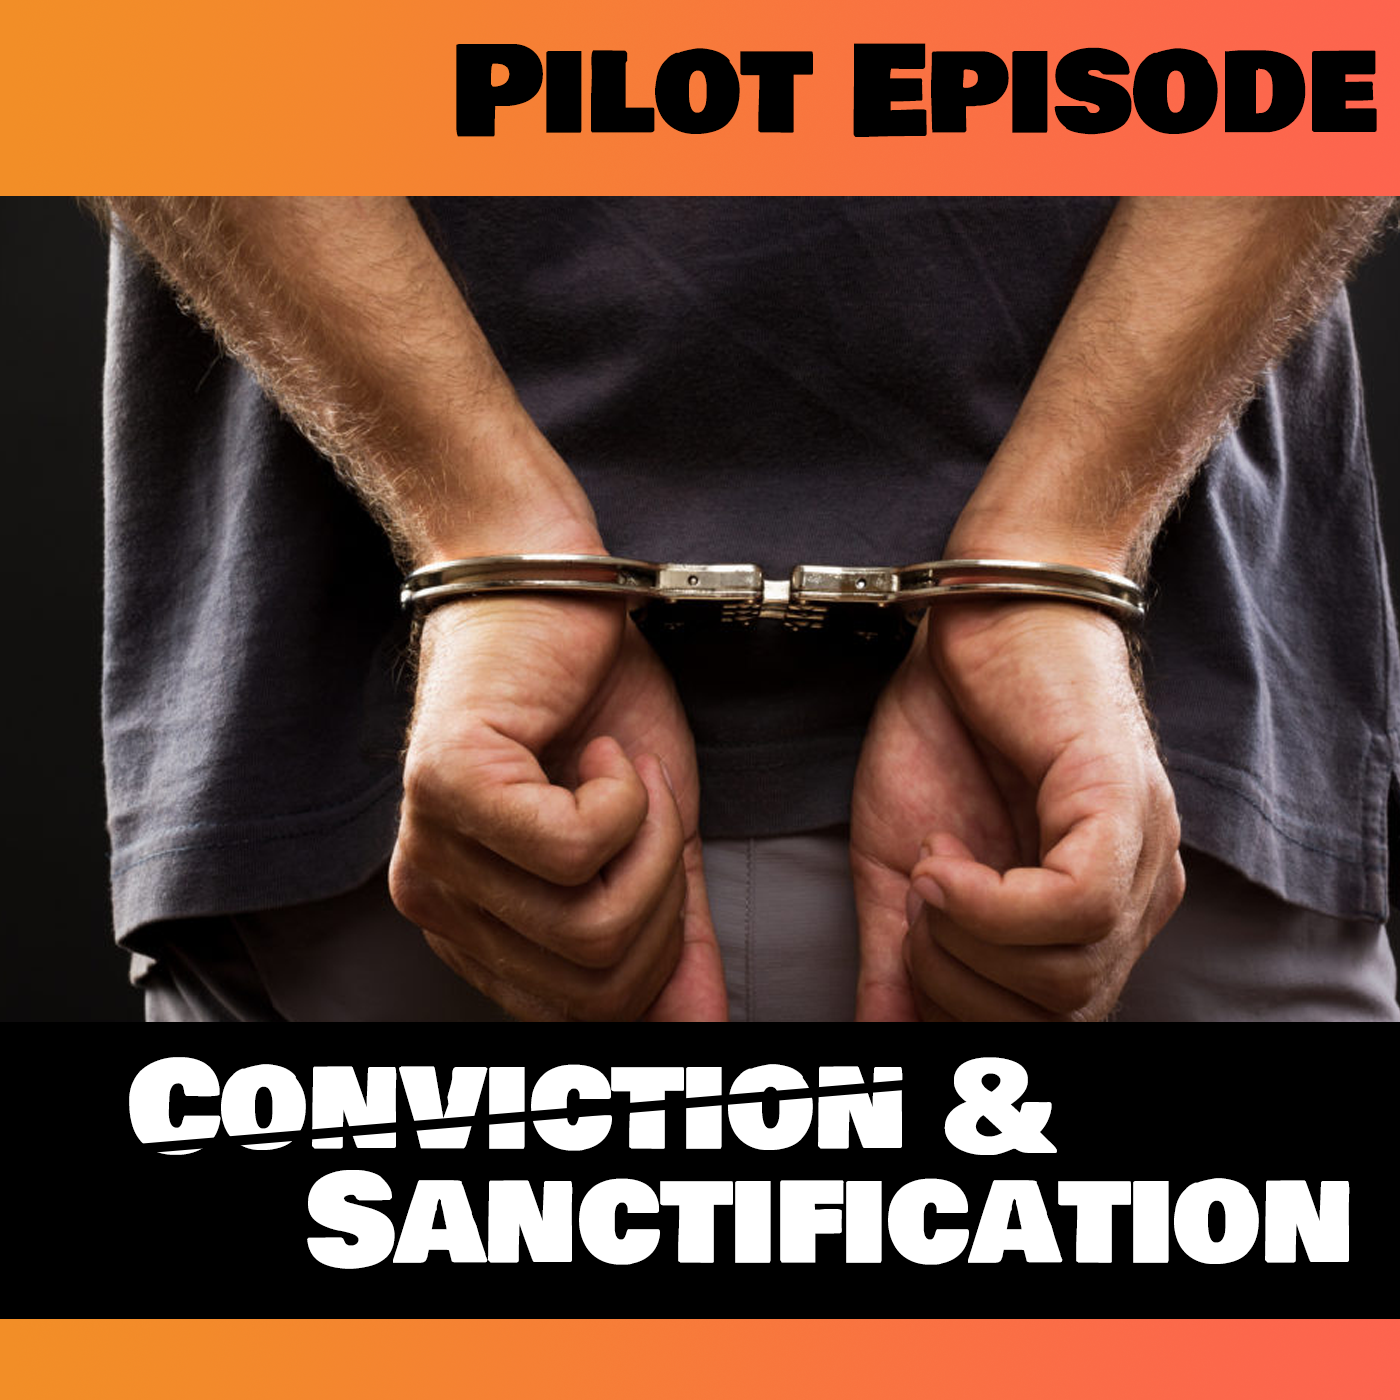 Pilot Episode: Conviction and Sanctification